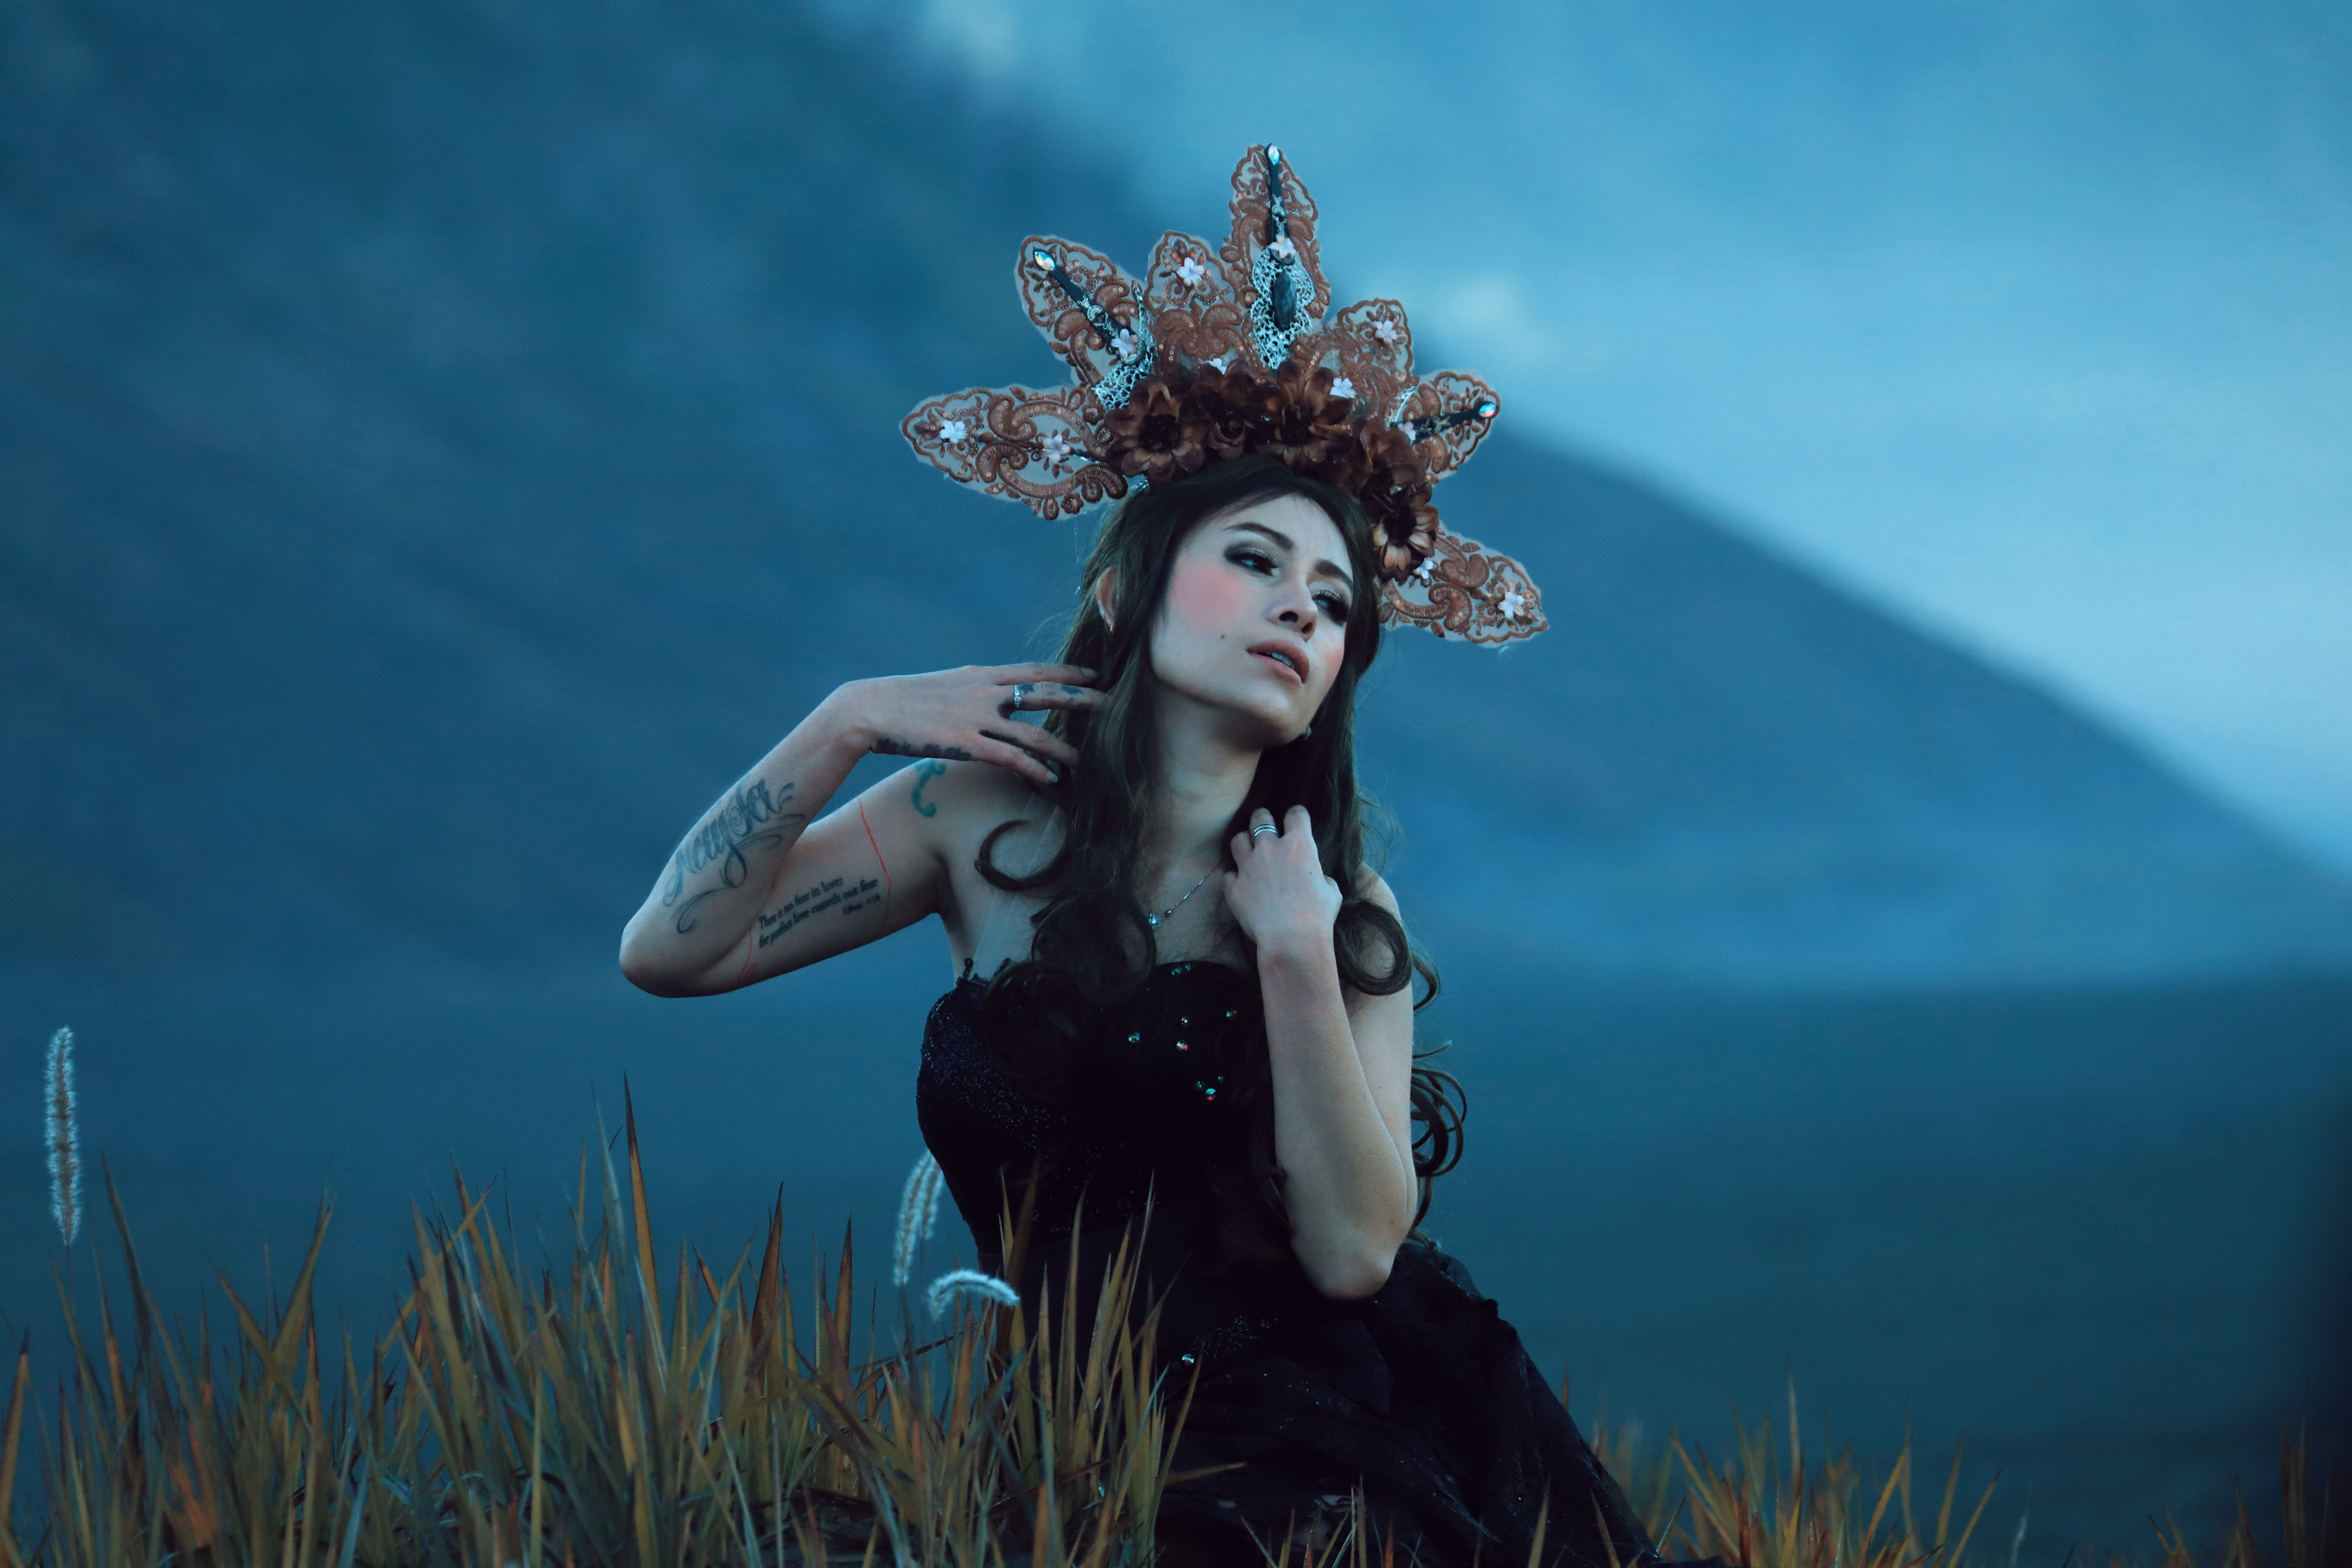 woman wearing black tube top with brown and white headdress standing in field